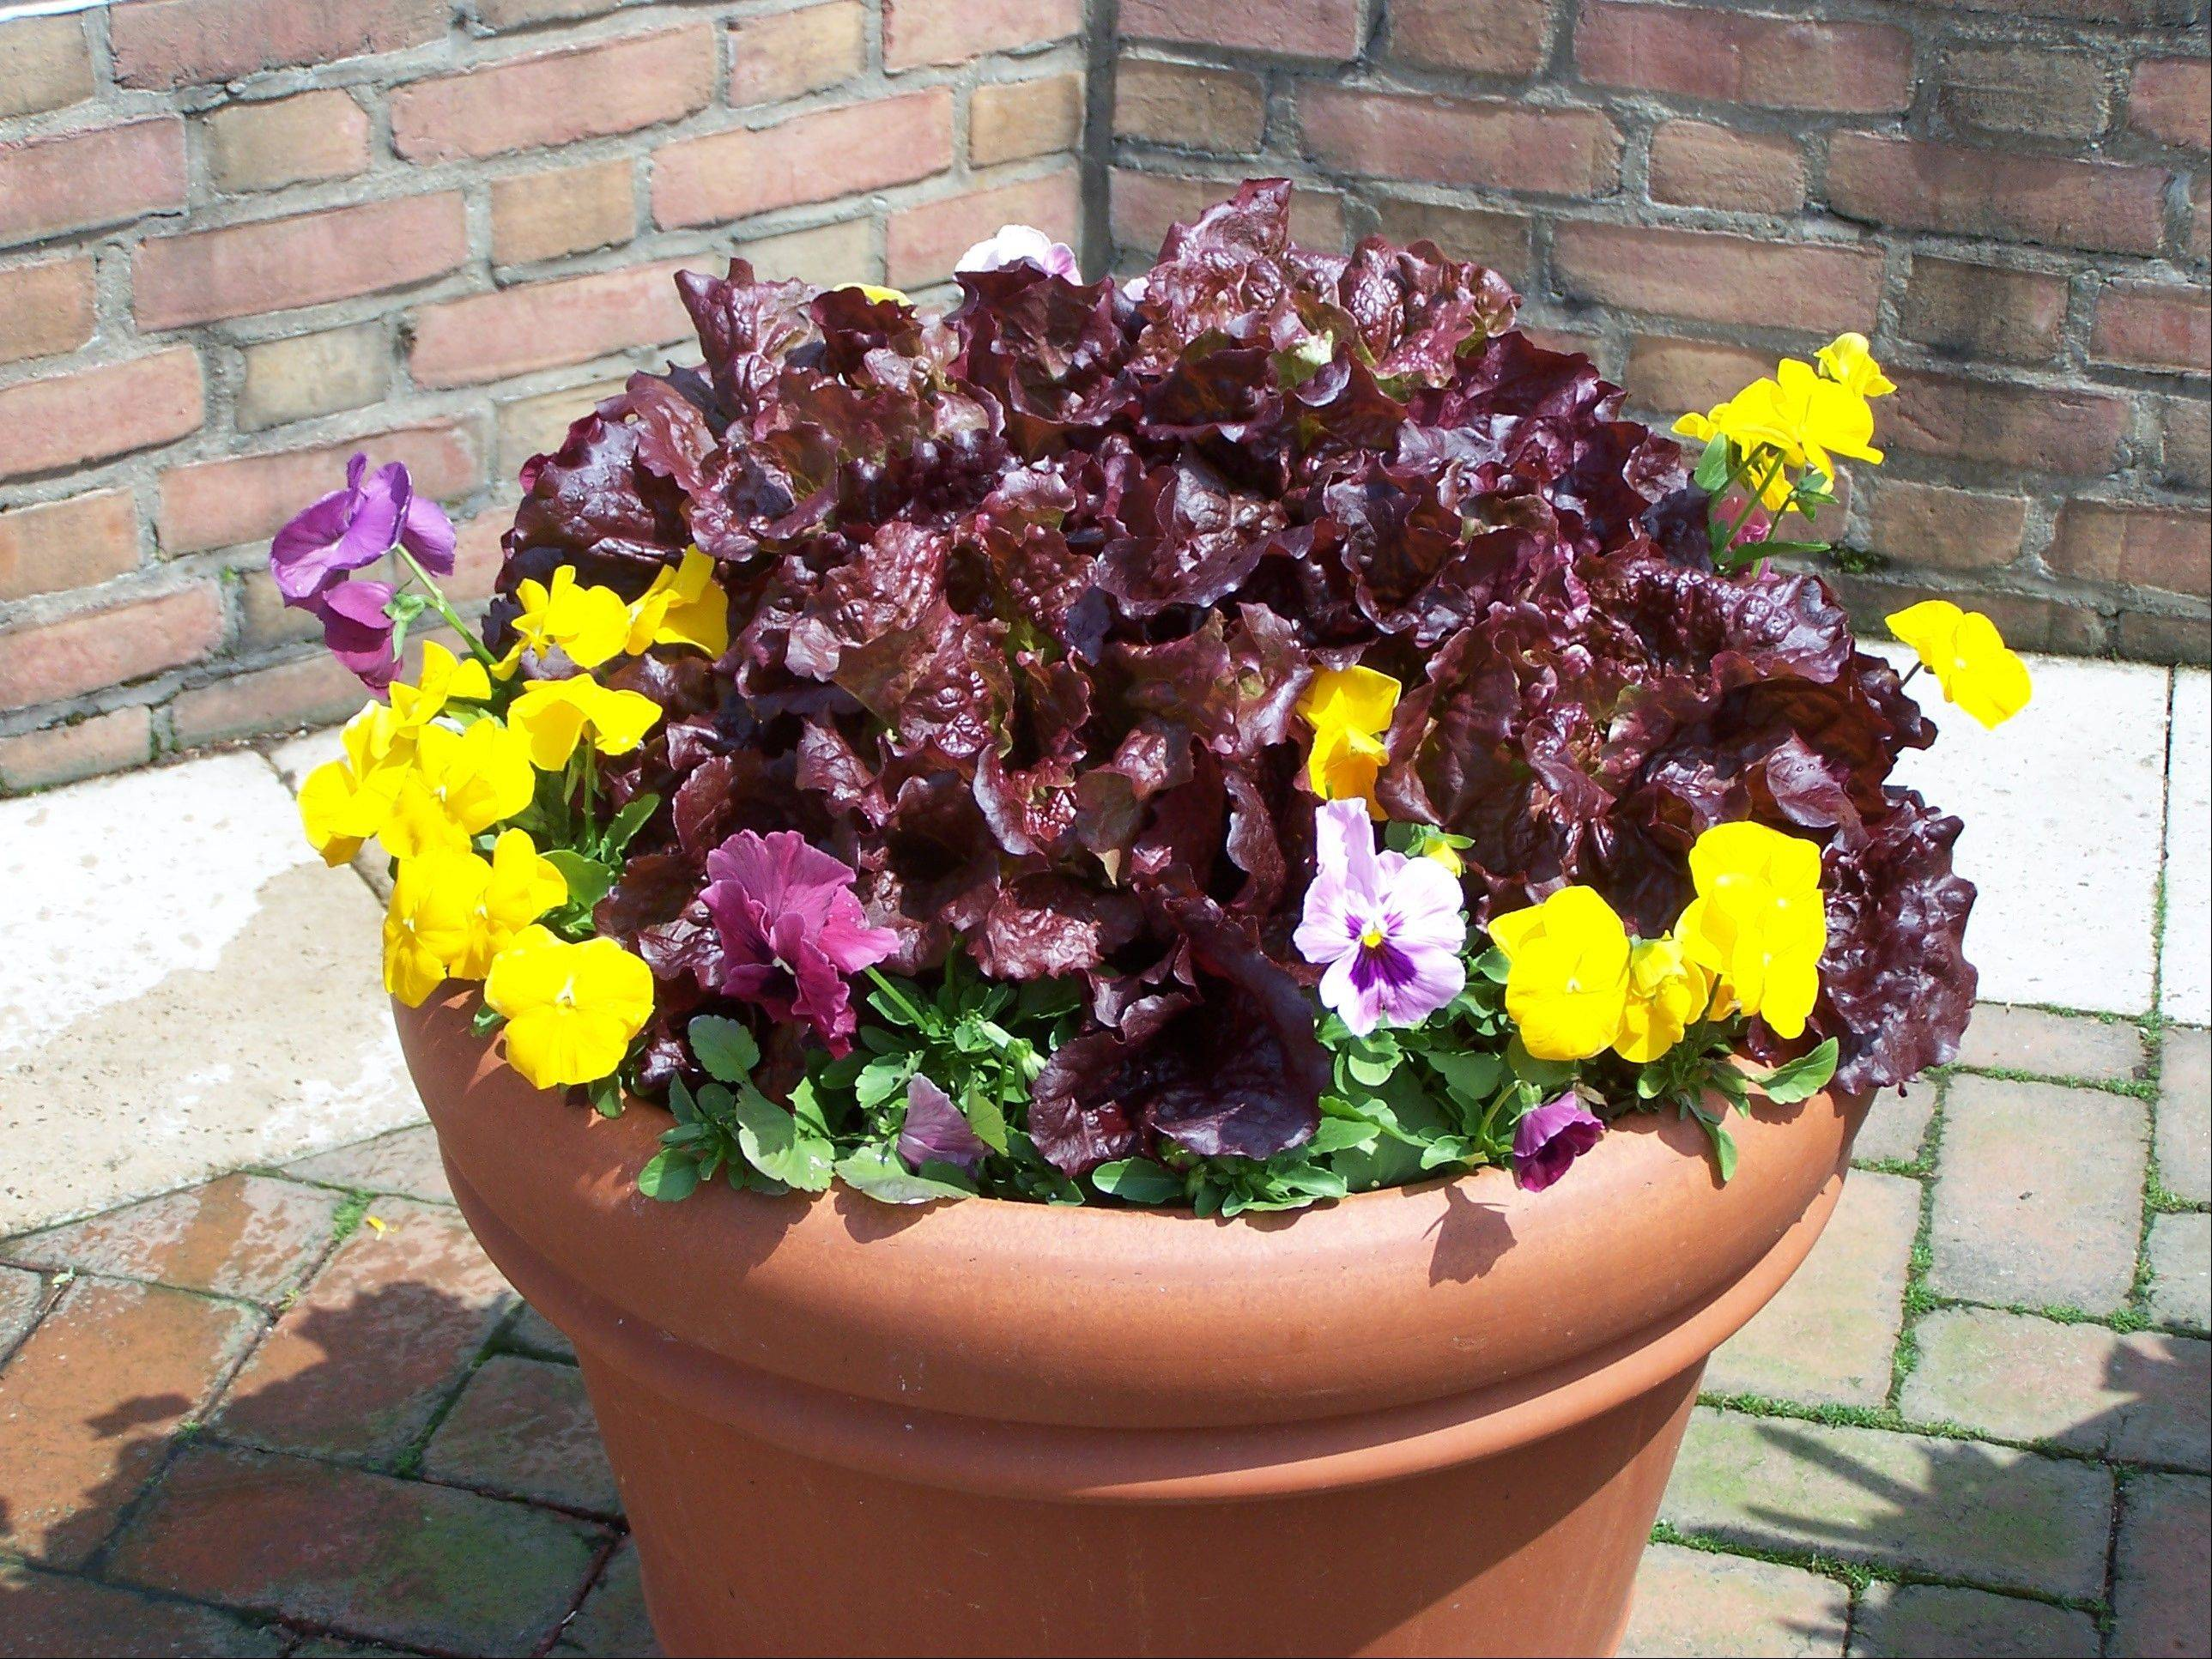 Pansies and ornamental lettuce are a good start to a container. A few cut branches of yellow twig dogwood in the center would add height